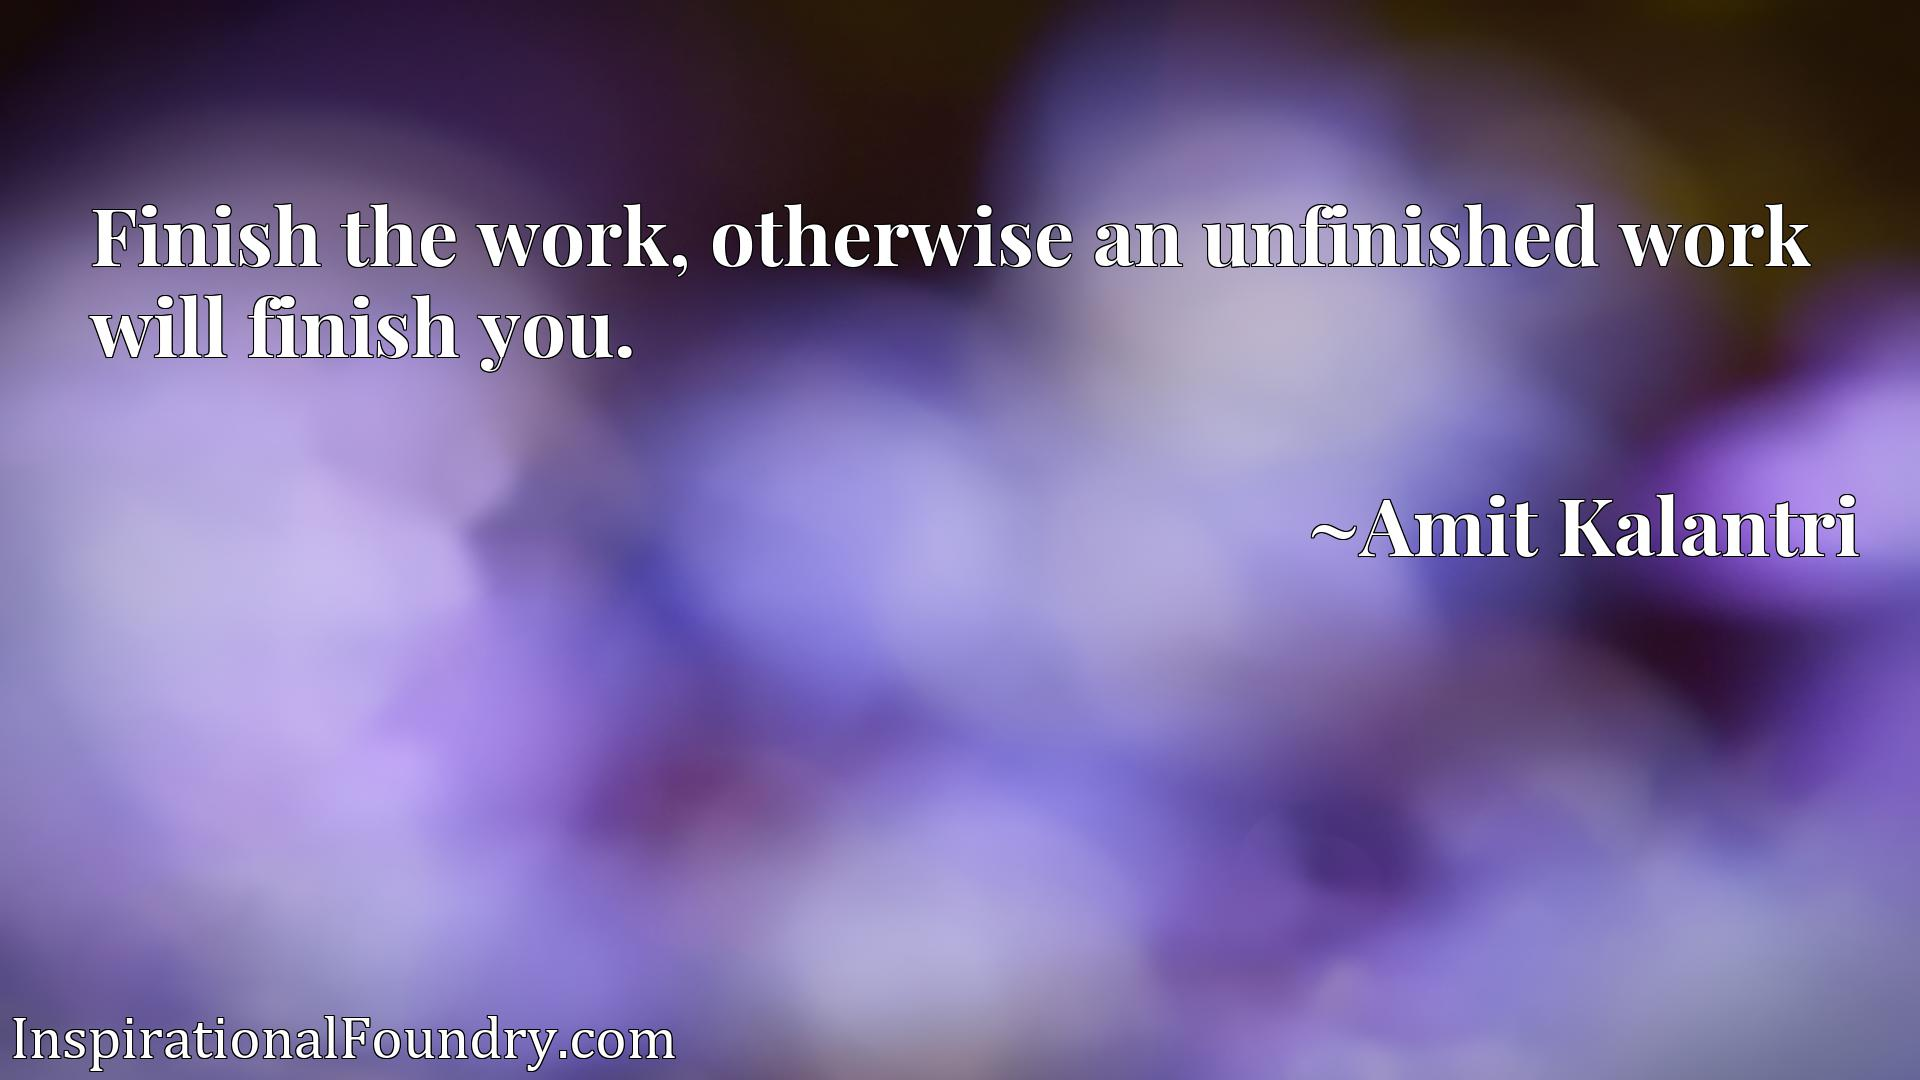 Finish the work, otherwise an unfinished work will finish you.